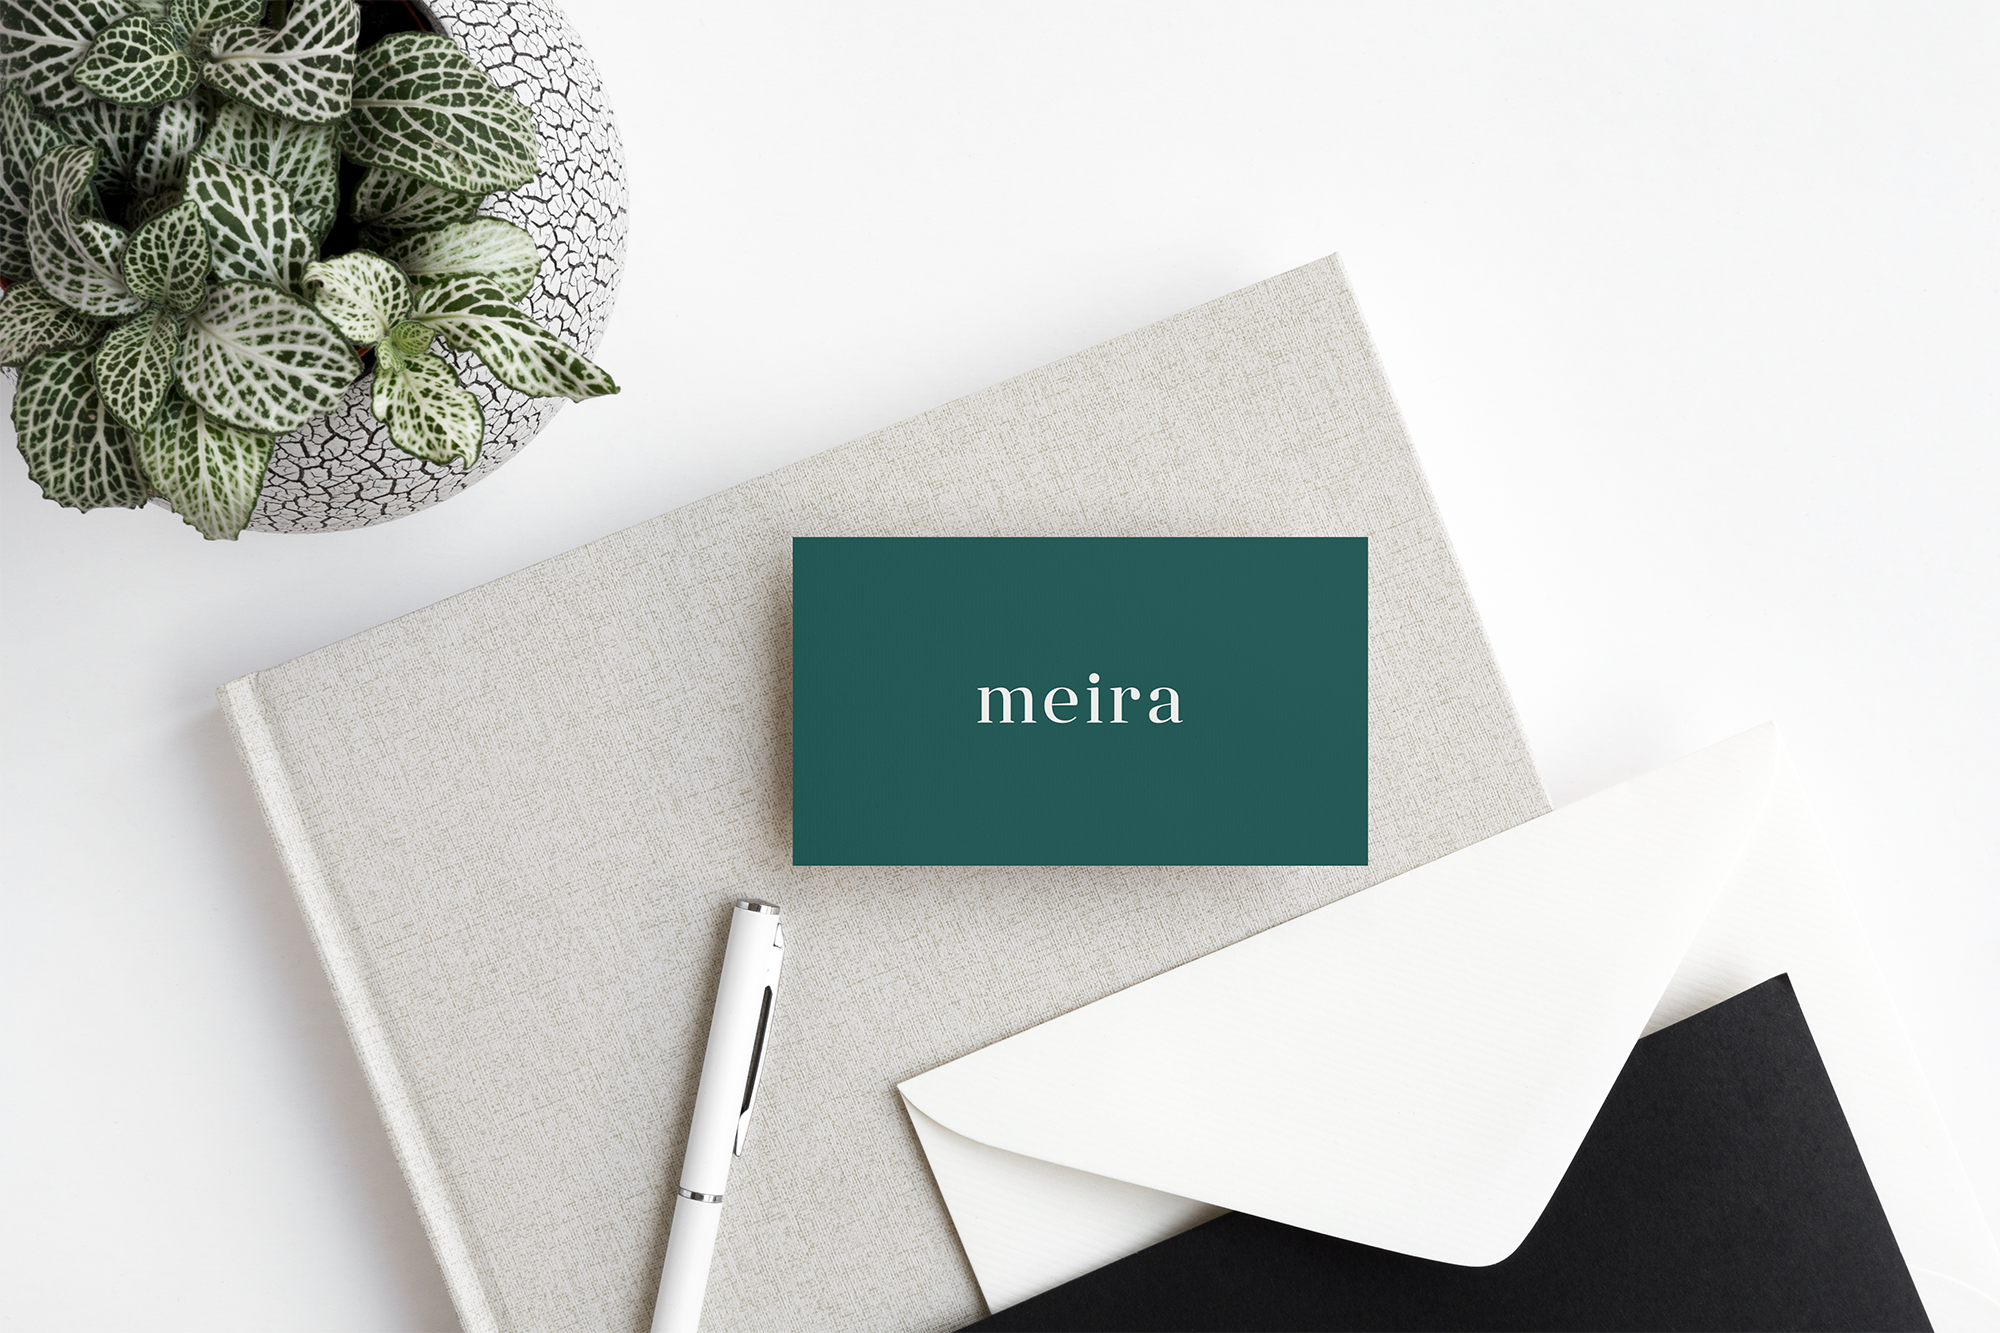 Meira Consulting green business card with m icon on top of a grey notebook with a white pen.